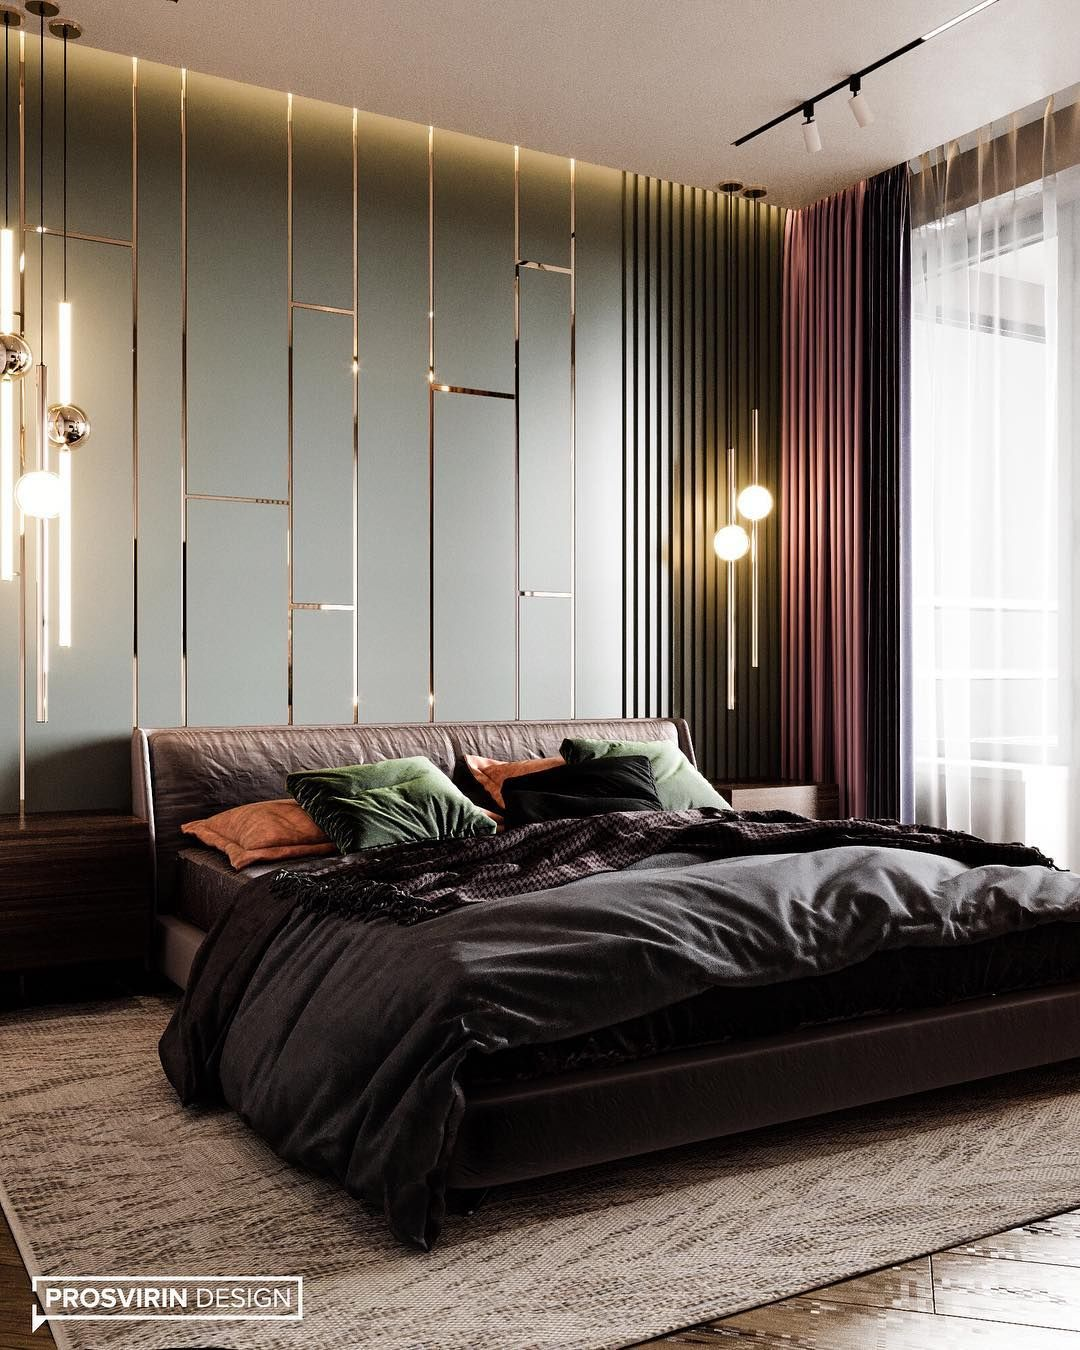 Black Bedroom Furniture Ideas Luxurious Bedrooms Bedroom Interior Bedroom Bed Design